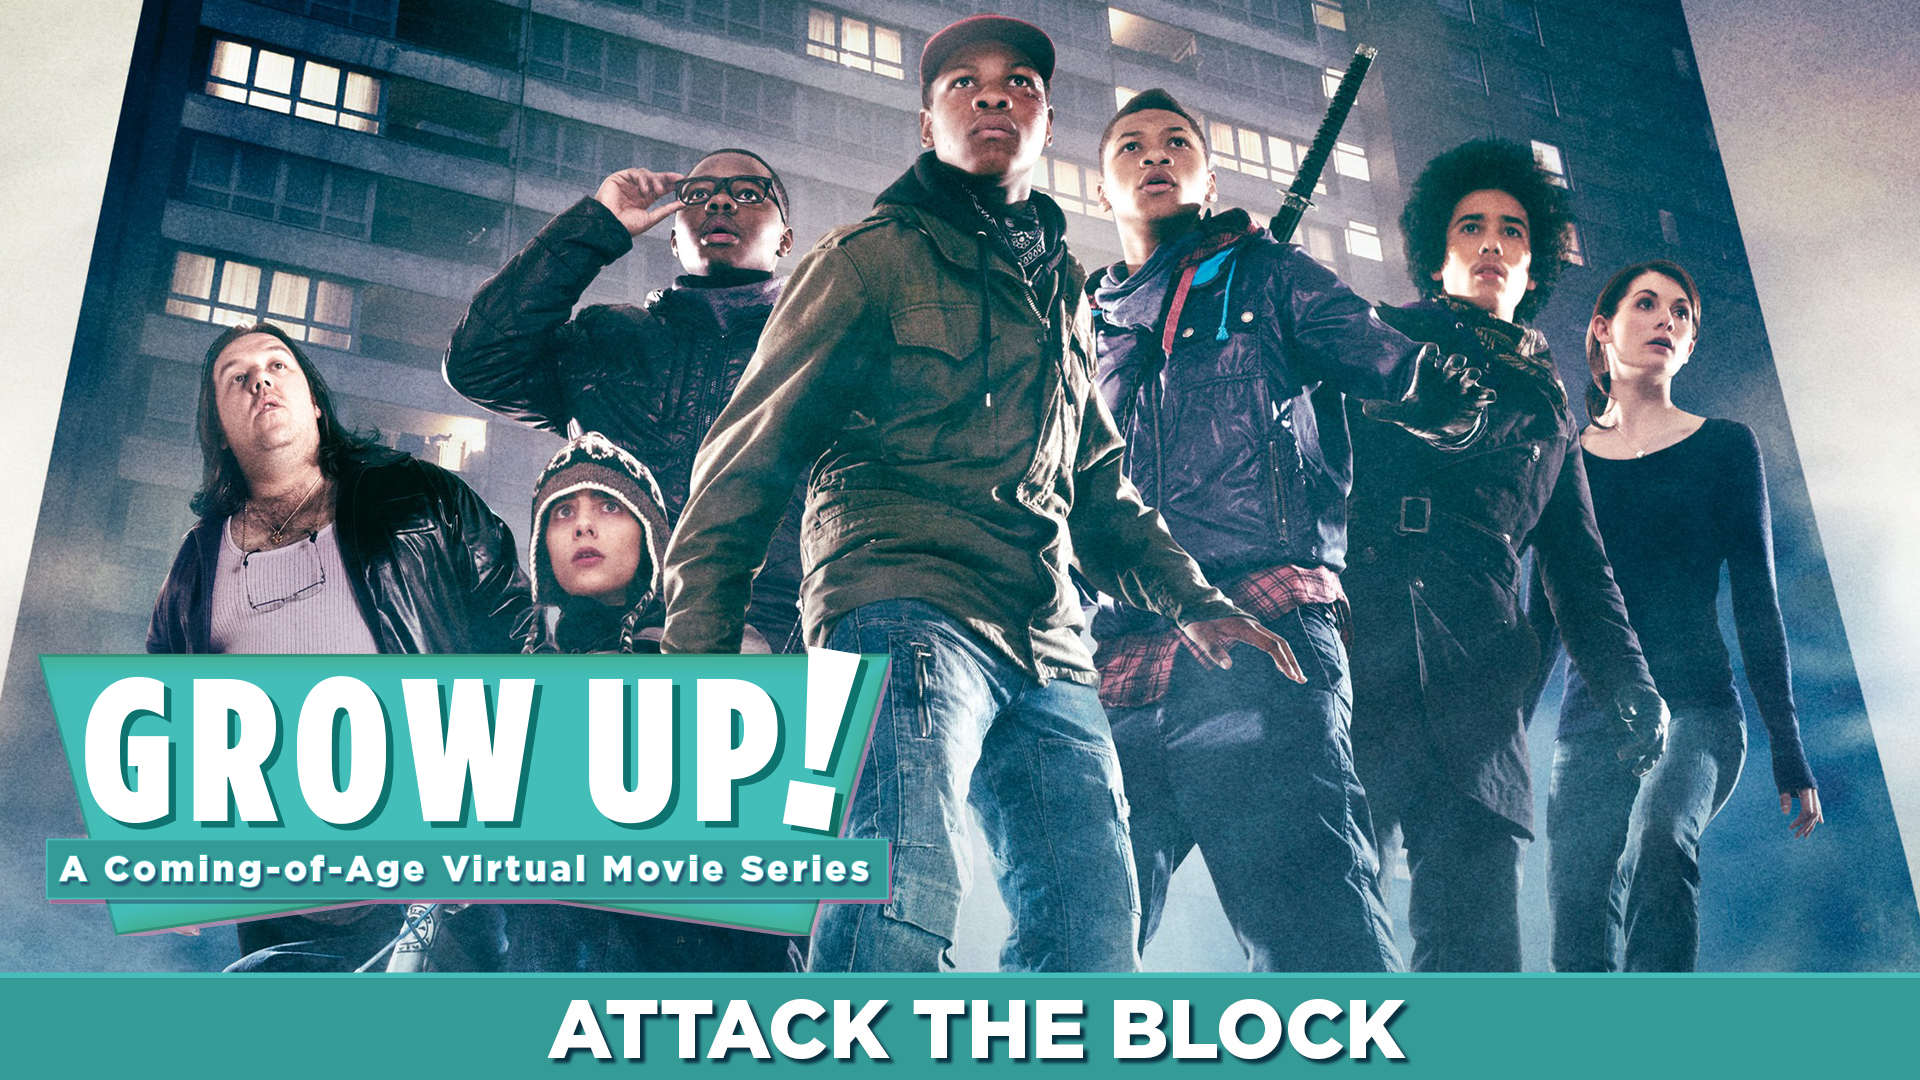 Grow Up! A Coming-of-Age Virtual Movie Series - Attack the Block